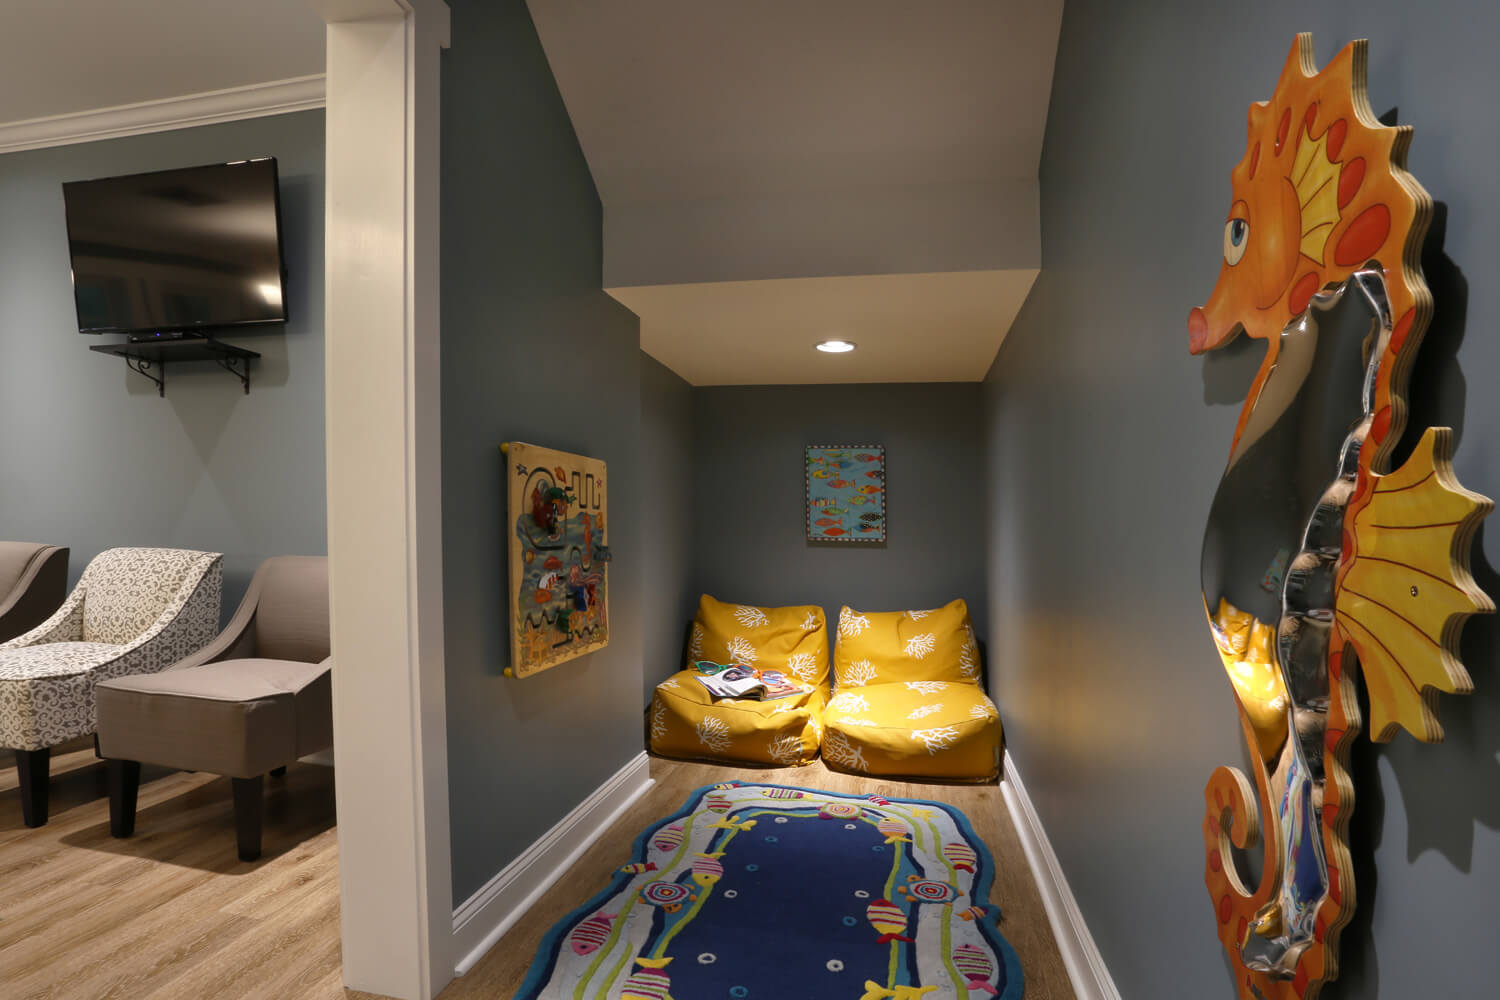 Pike Road Family Eyecare Designed by Foshee Architecture – Children's Play Area